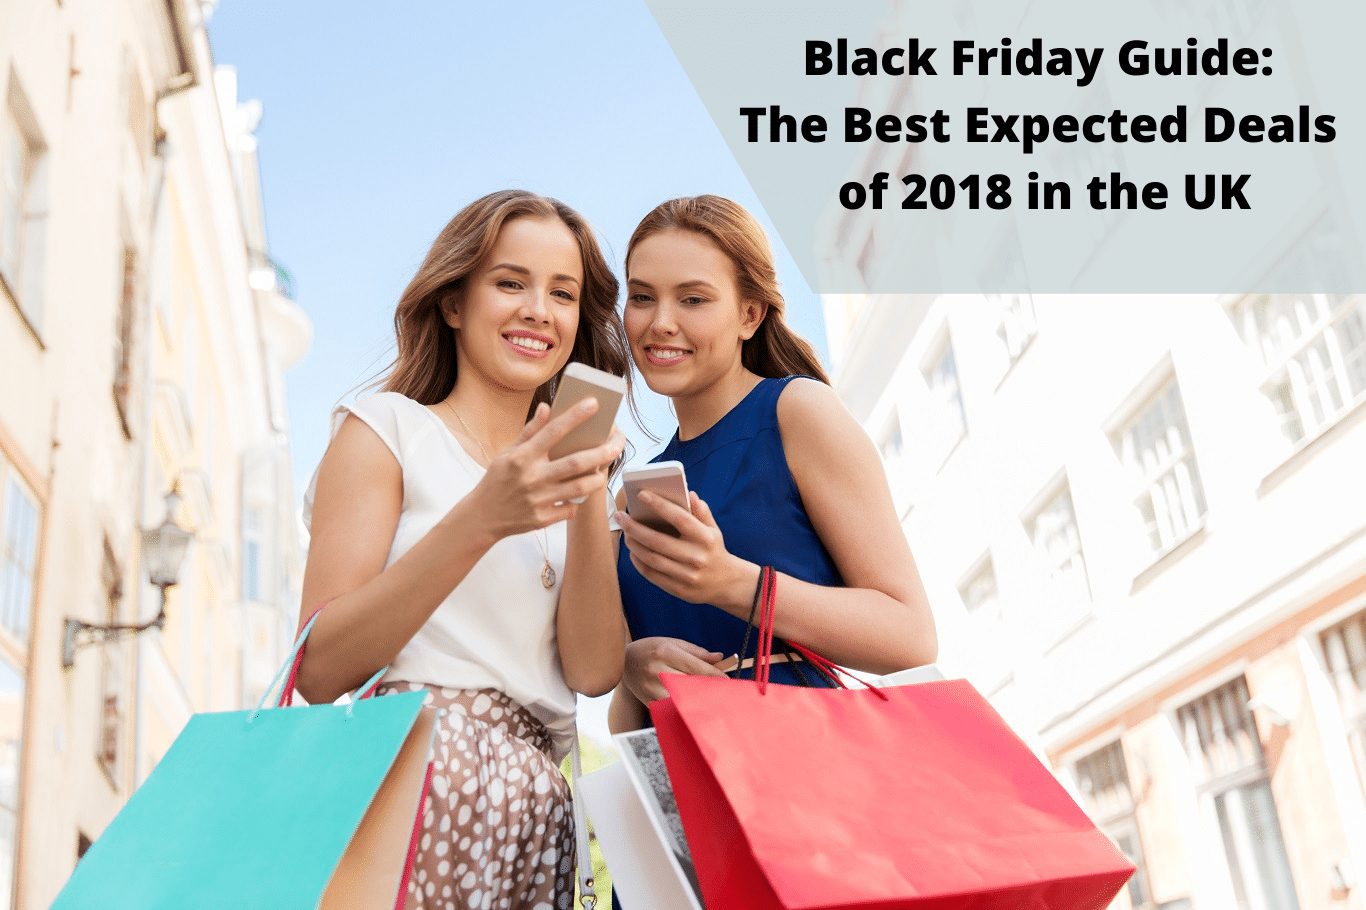 Black Friday Guide - The Best Expected Deals of 2018 in the UK